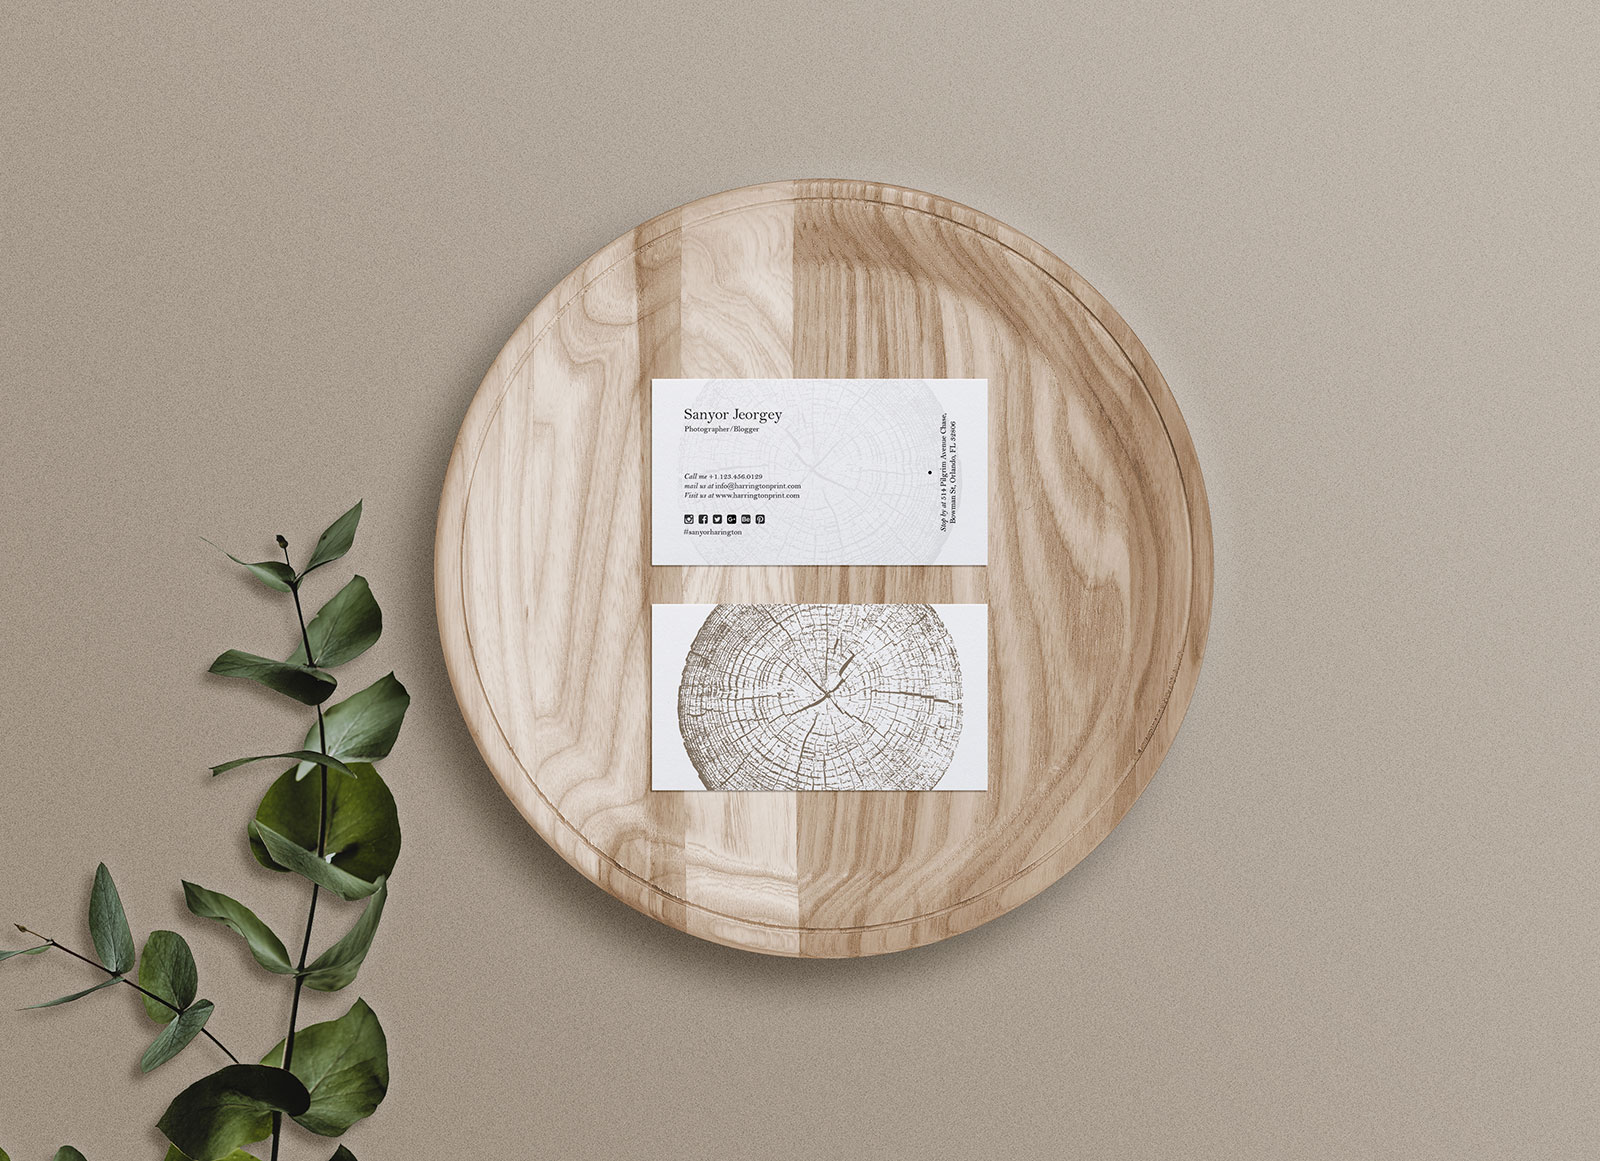 Free-Front-Back-business-card-mockup-on-wooden-tray